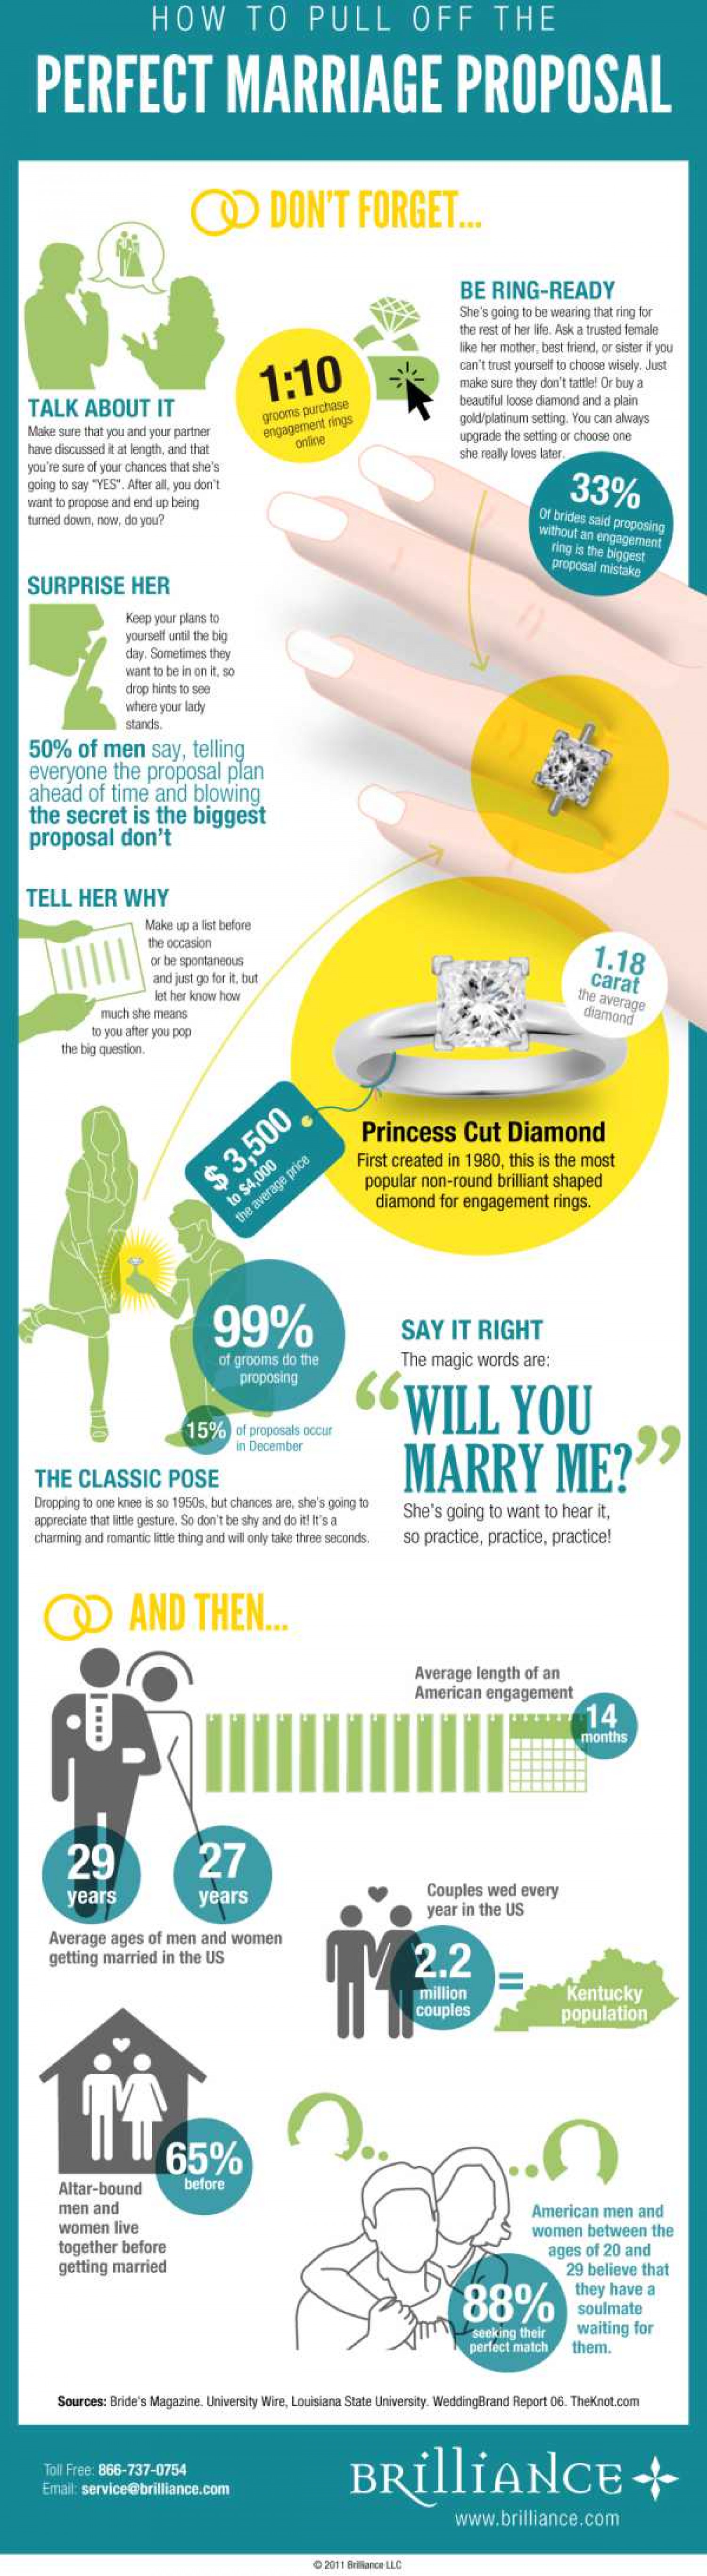 How To Pull Off The Perfect Marriage Proposal Infographic